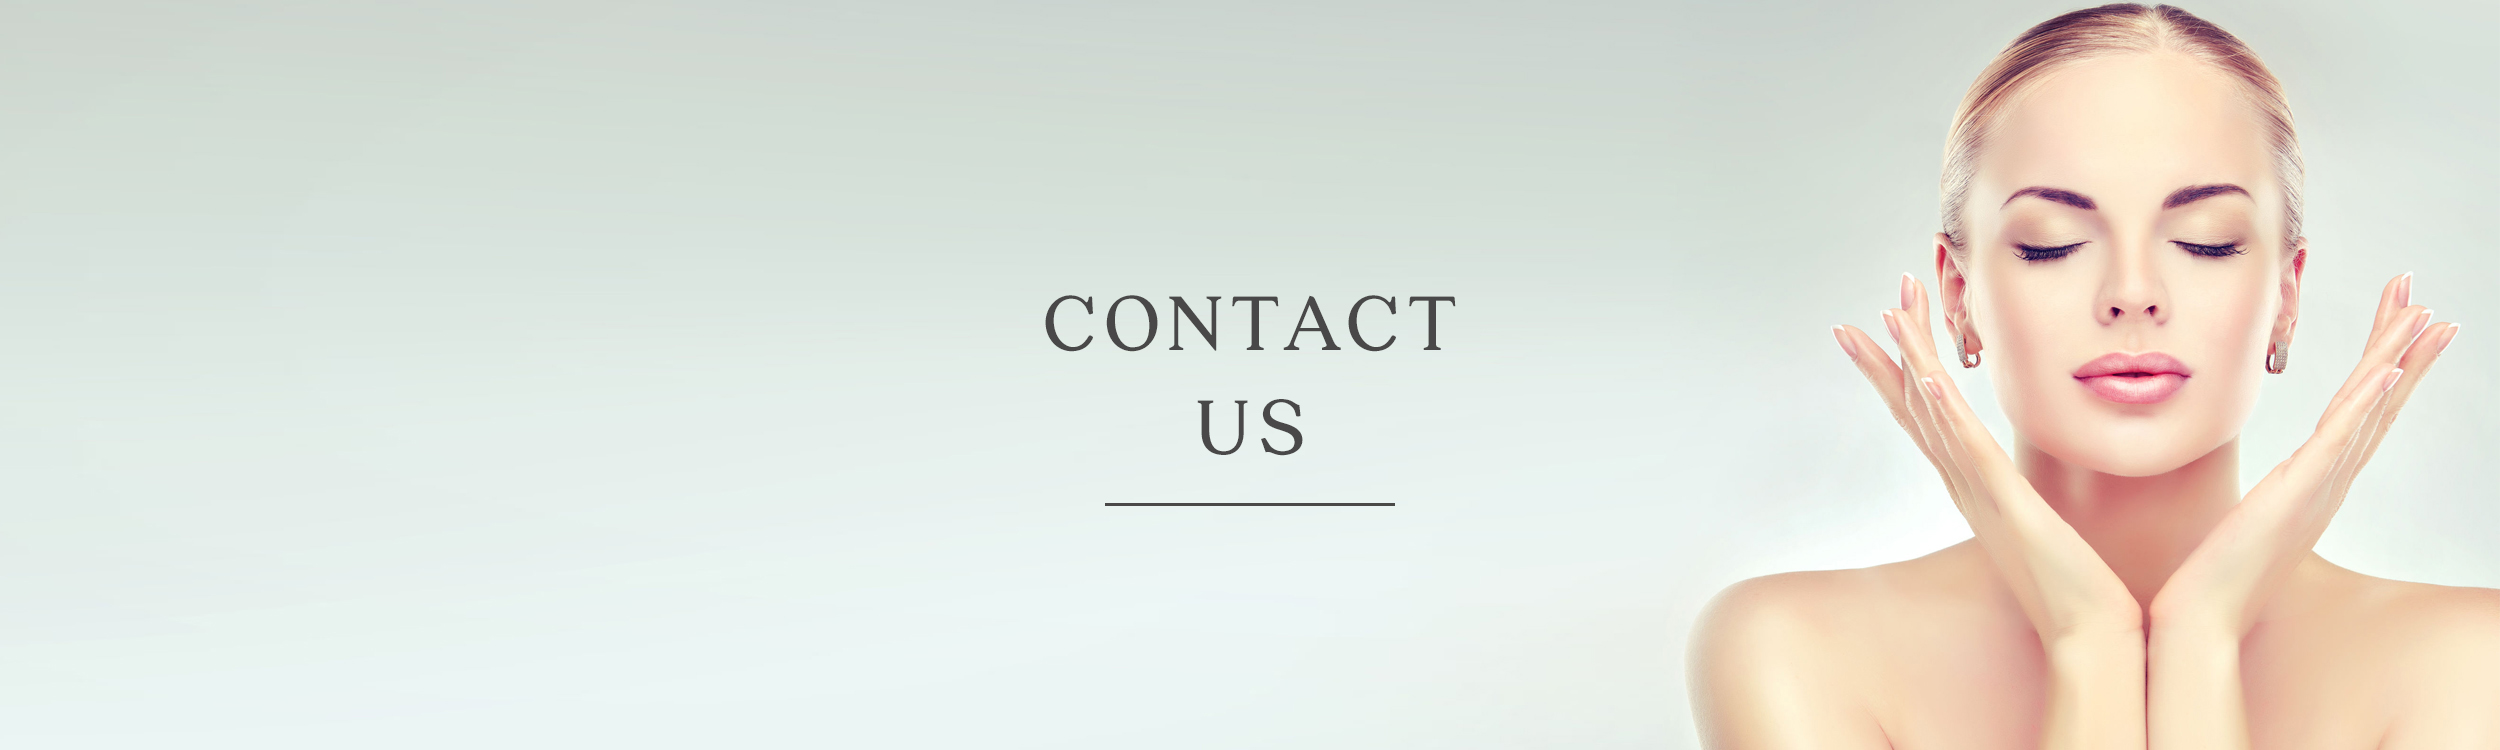 The Clinic for Medical Aesthetics - Contact Us Banner.jpg